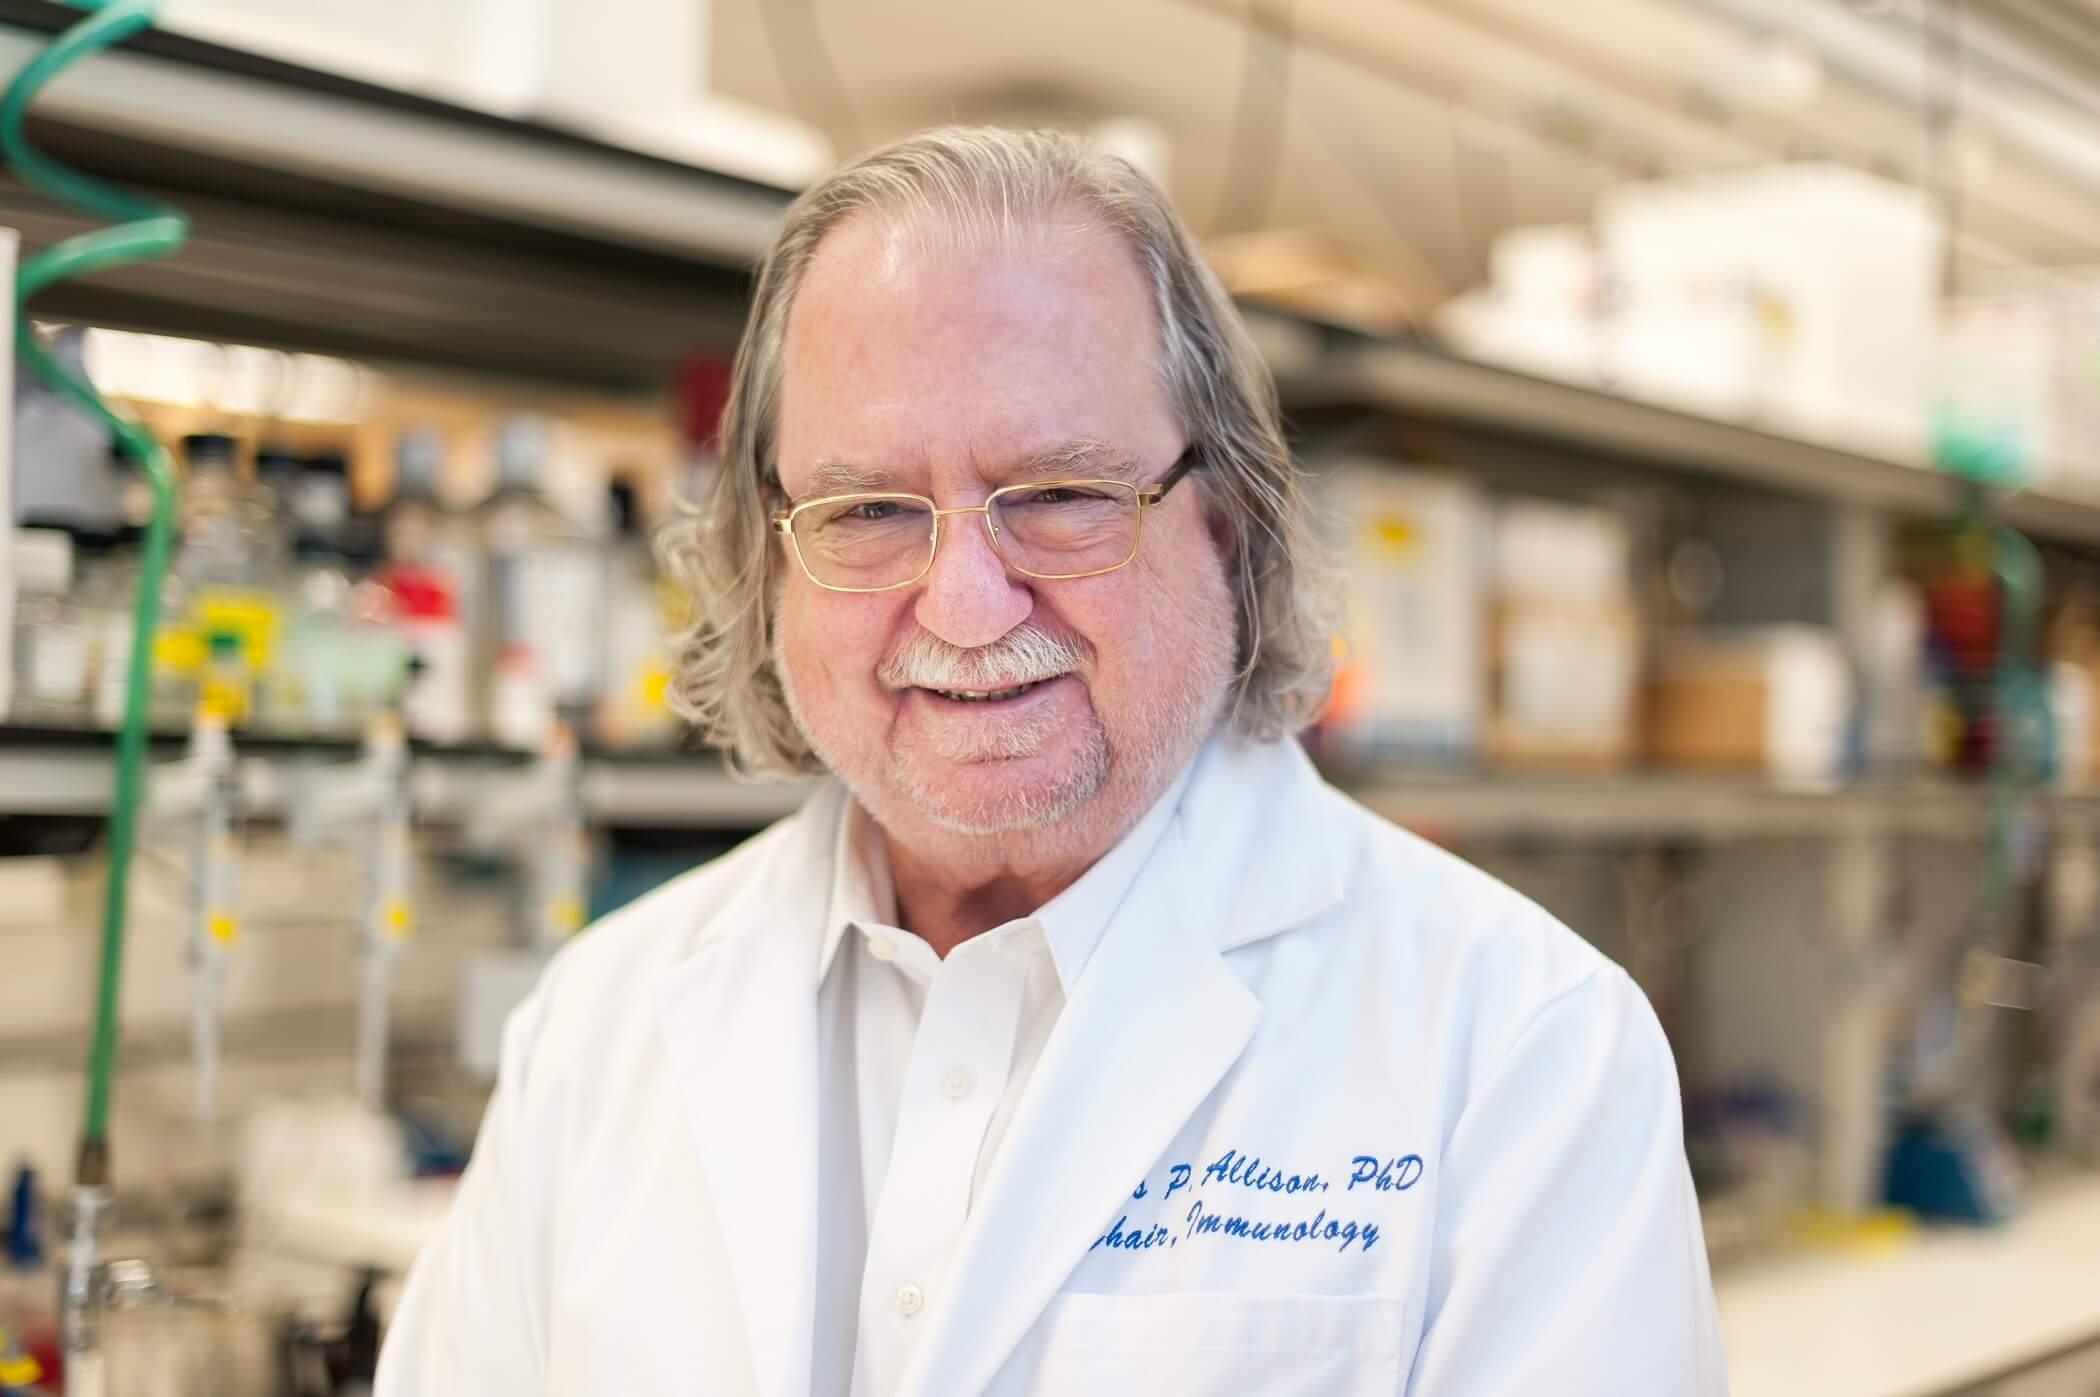 James P. Allison, Ph.D., in his laboratory at MD Anderson. (Courtesy of MD Anderson)